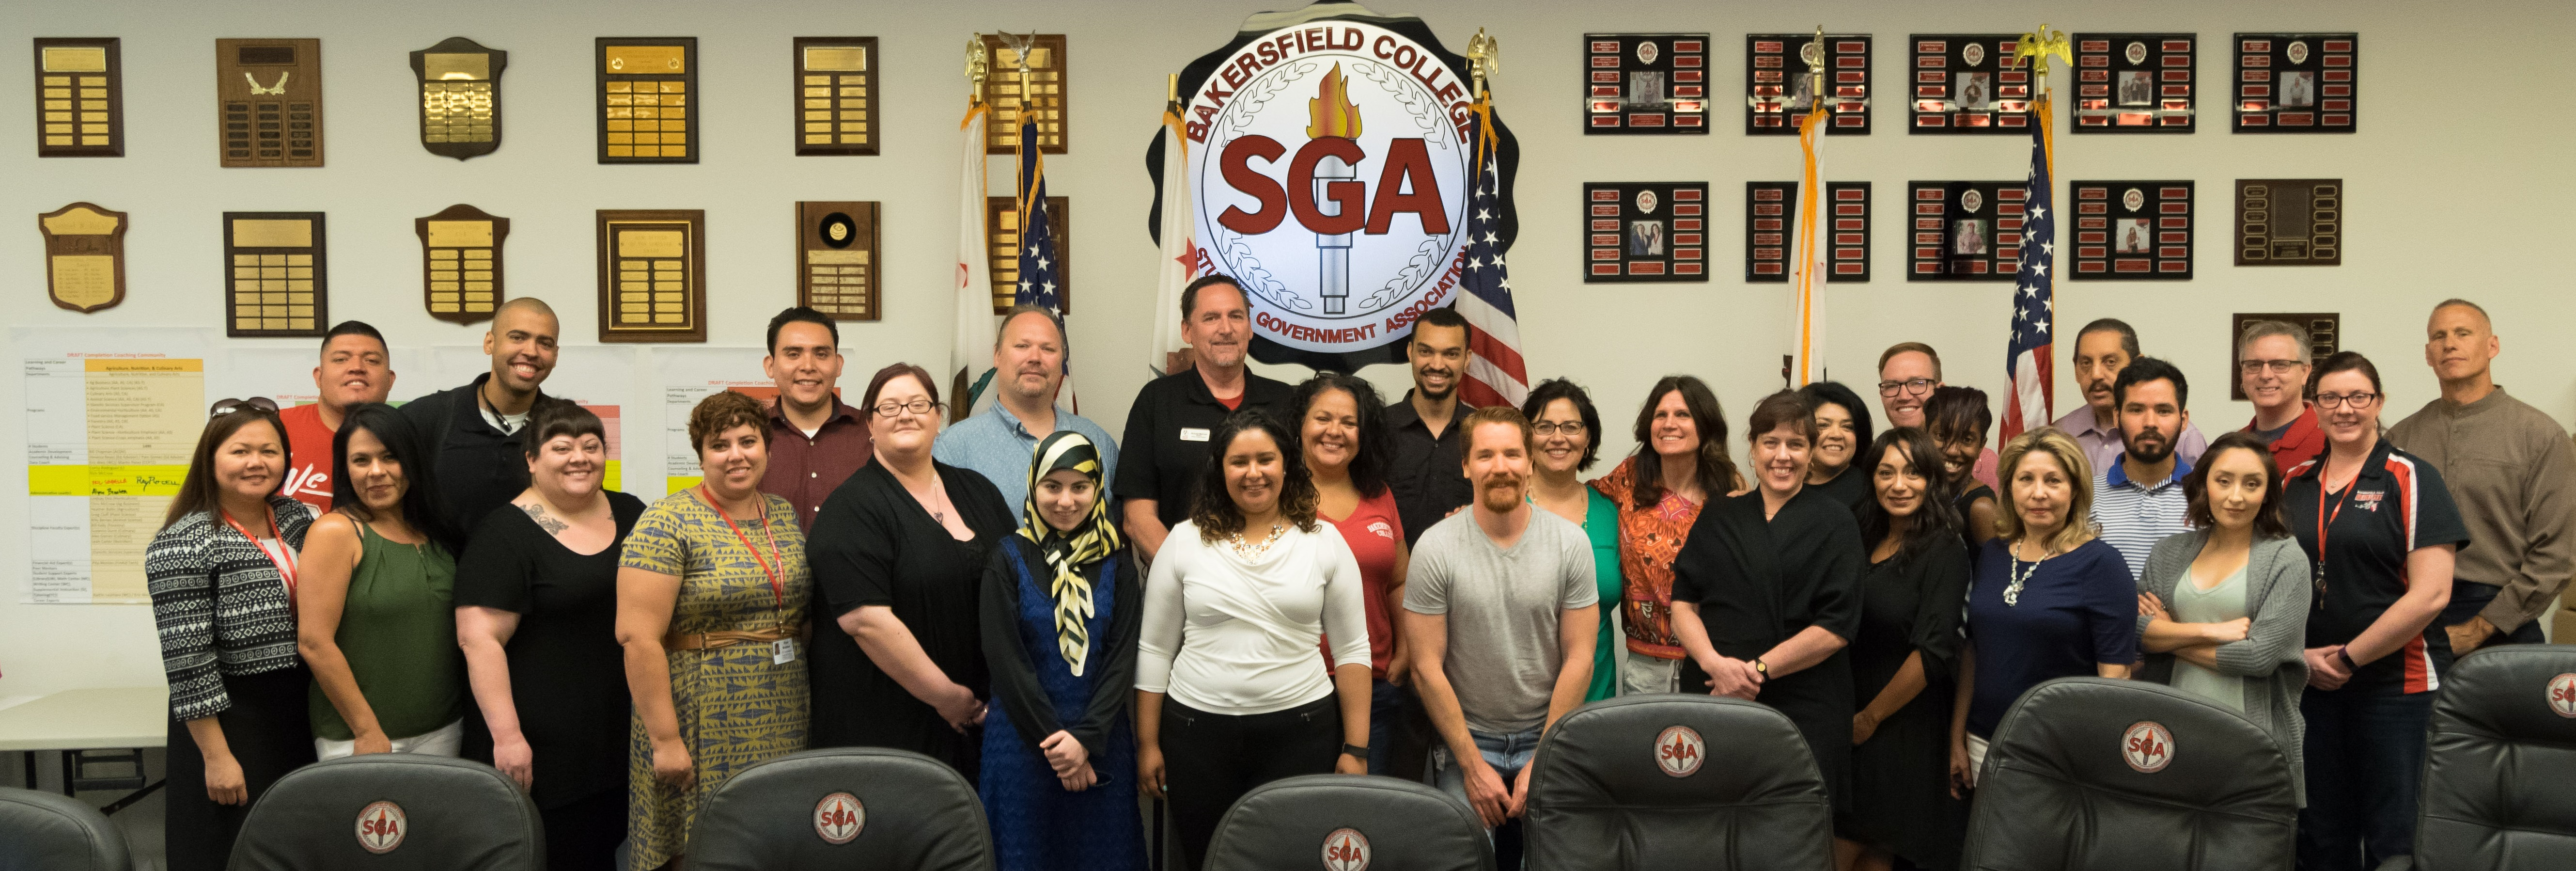 Academic Support Retreat Larger Group July 6 2017.jpg